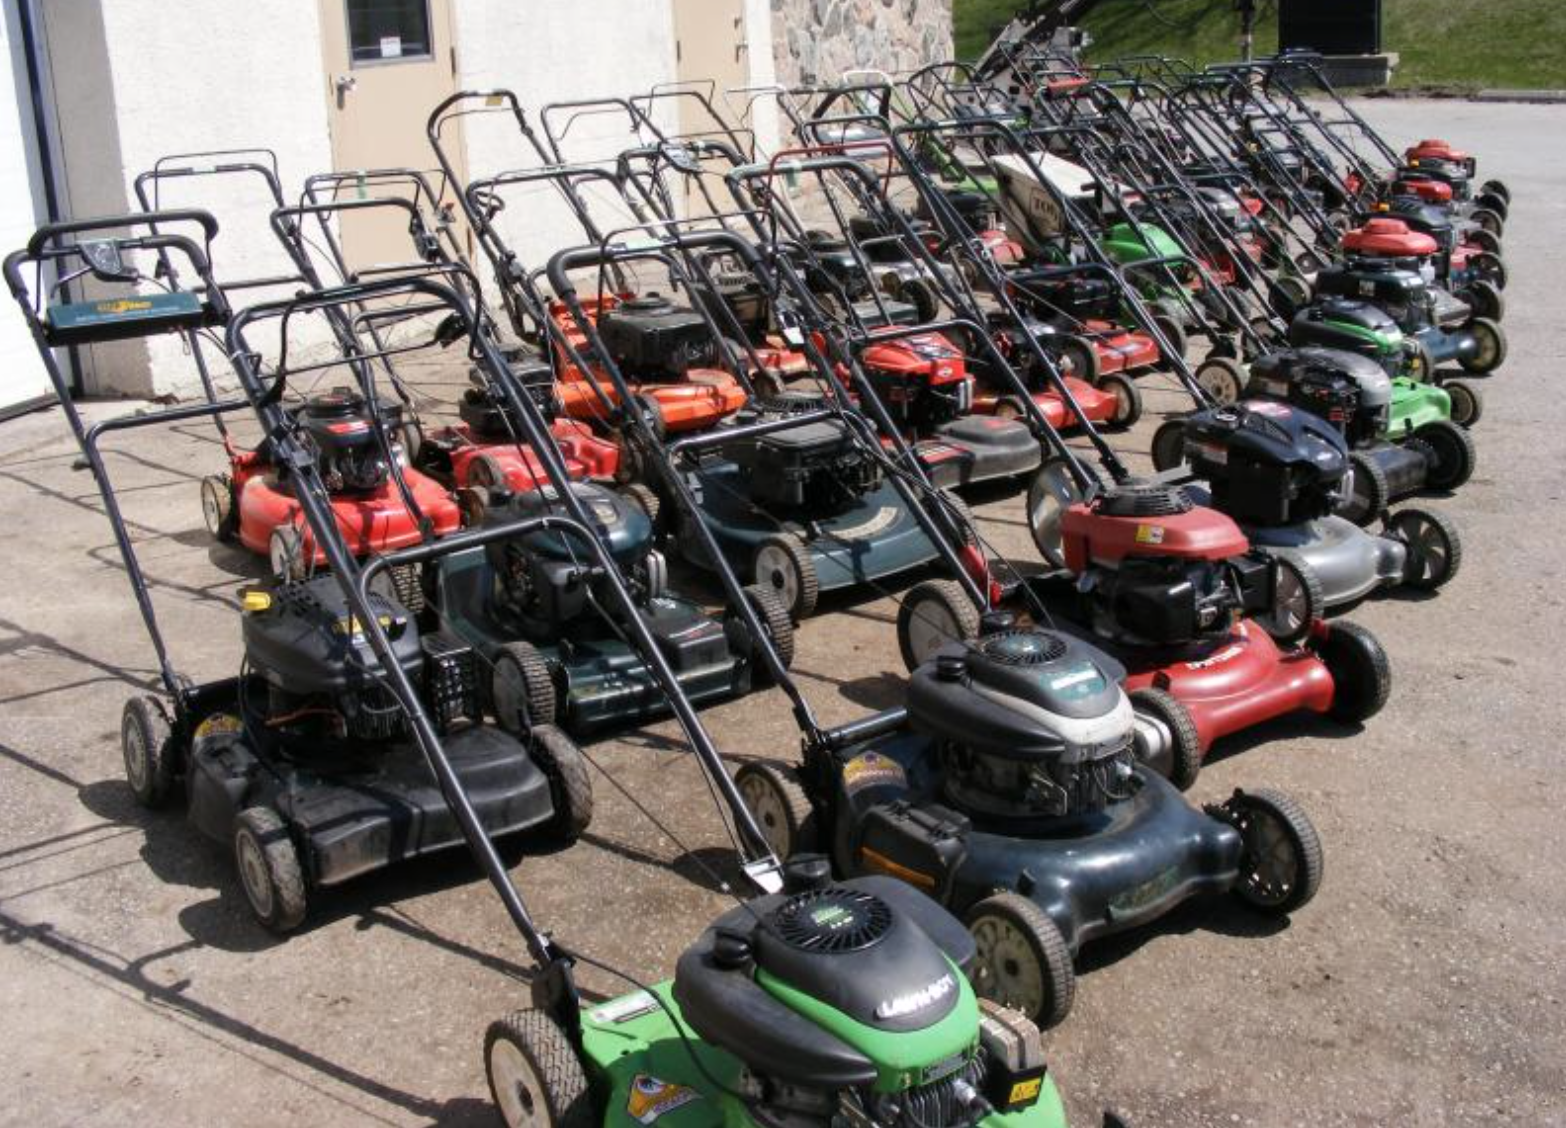 Sears Lawn Mower Parts Marketplace